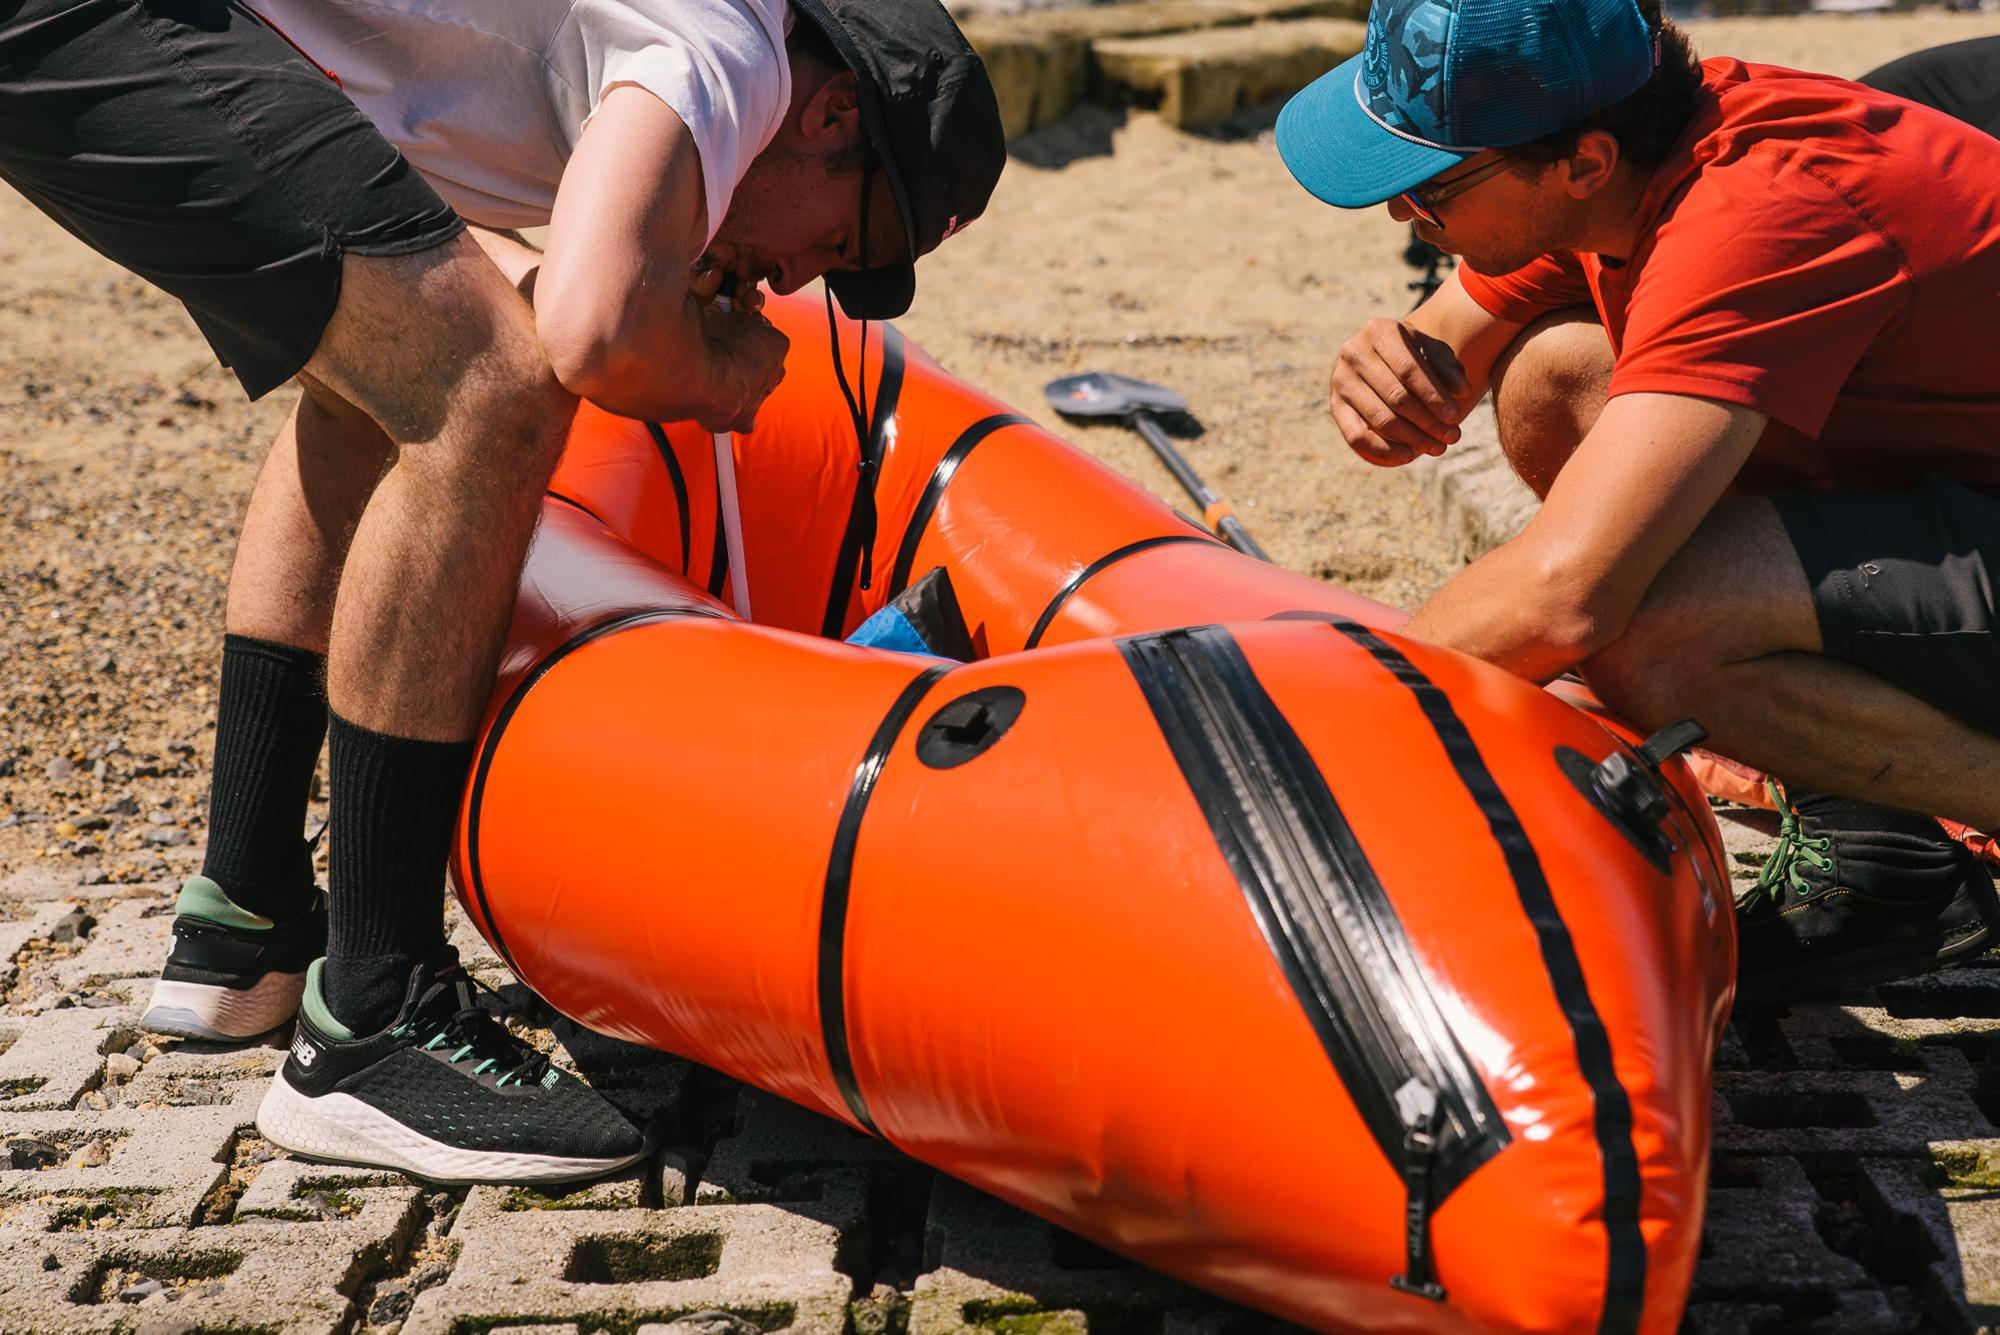 Inflating the rafts